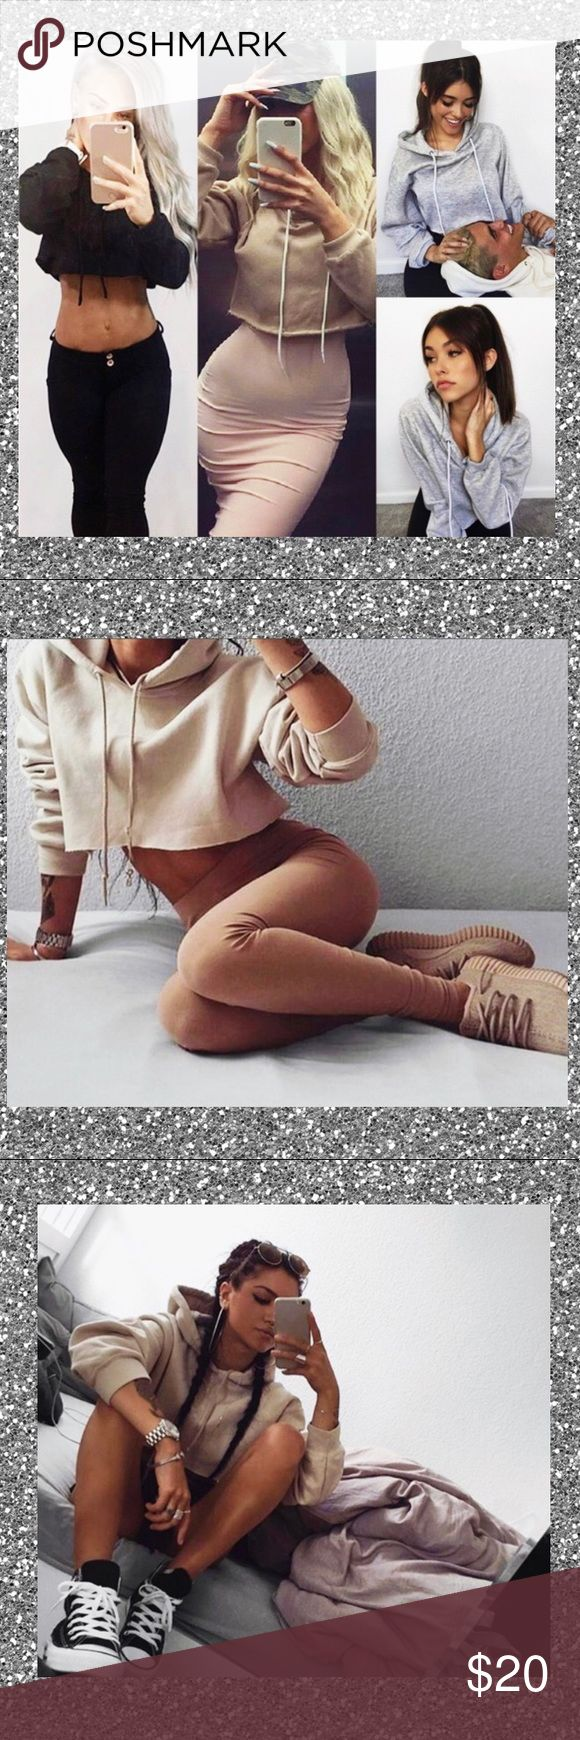 ⒸⓇⓄⓅⓅⒺⒹ ⒽⓄⓄⒹⒾⒺ  ✨deets: tan hoodie, cropped with draw strings   ✨ size: M  ✨ My line will be coming out January 2018  TAGS: forever 21, crop top, baddie, insta baddie, trendy, stylish, cute, hottie, american eagle, kylie, kim, zara, bad,urban outfitters,thrasher, tumblr, trendy Tops Sweatshirts & Hoodies